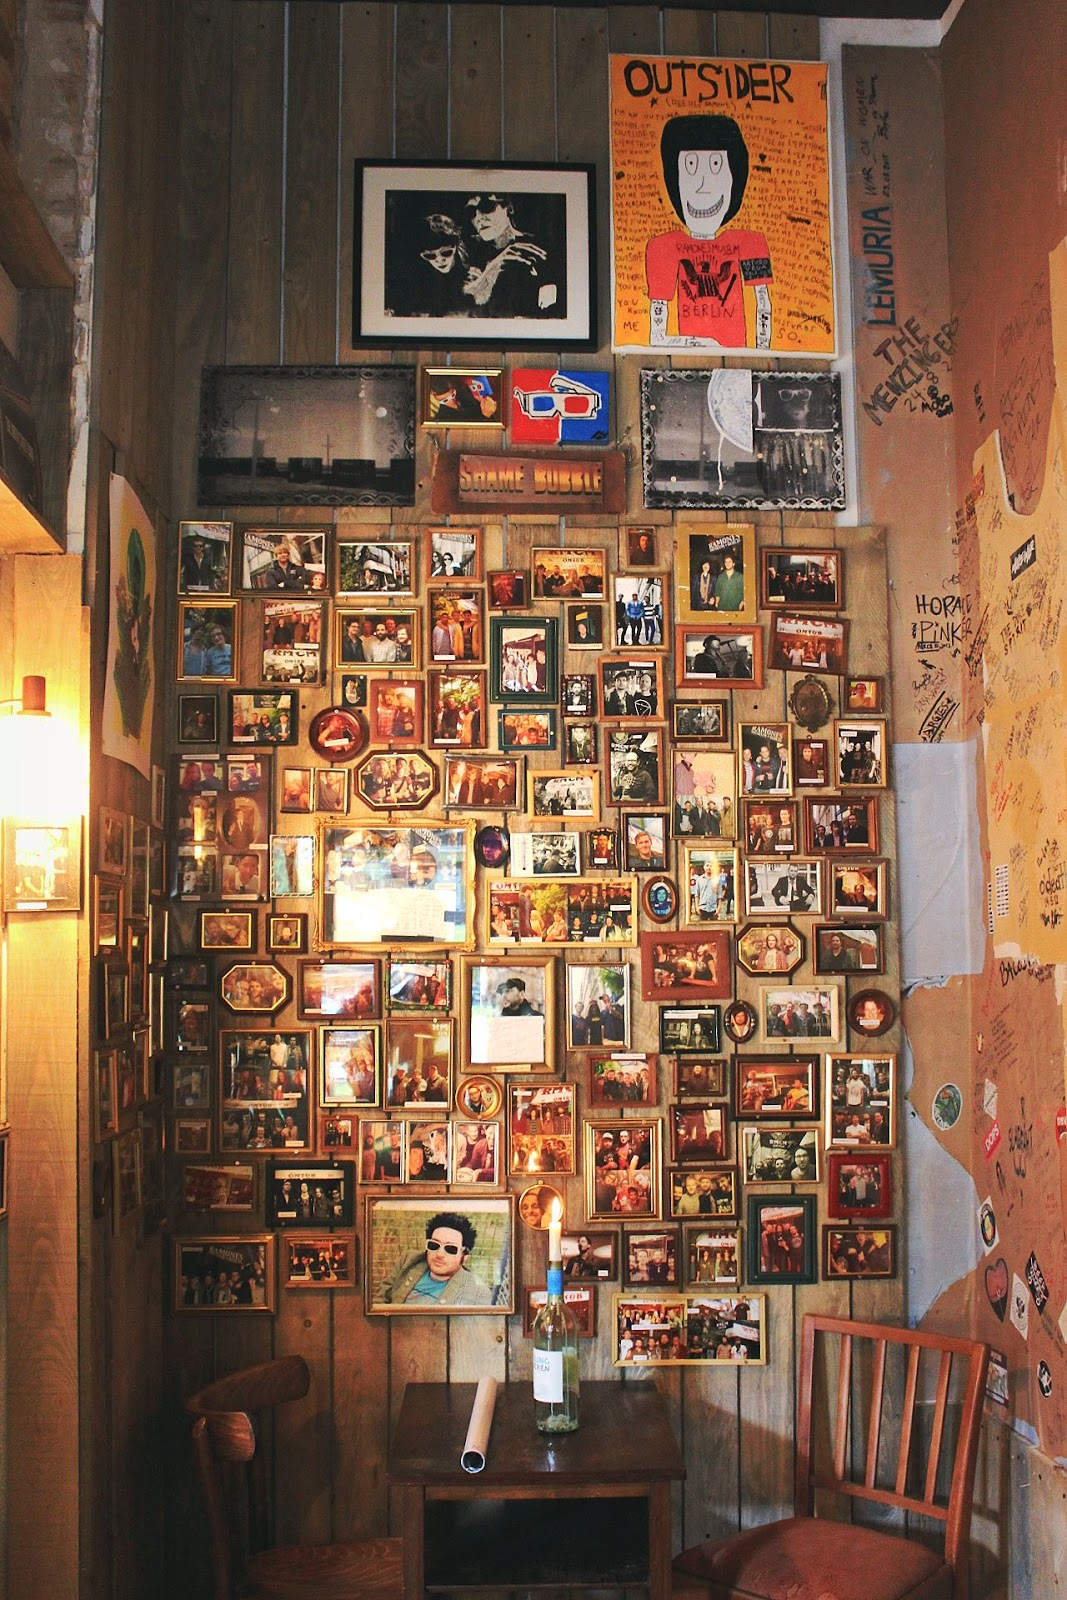 A huge collection of framed photos fill a feature wall in the cafe